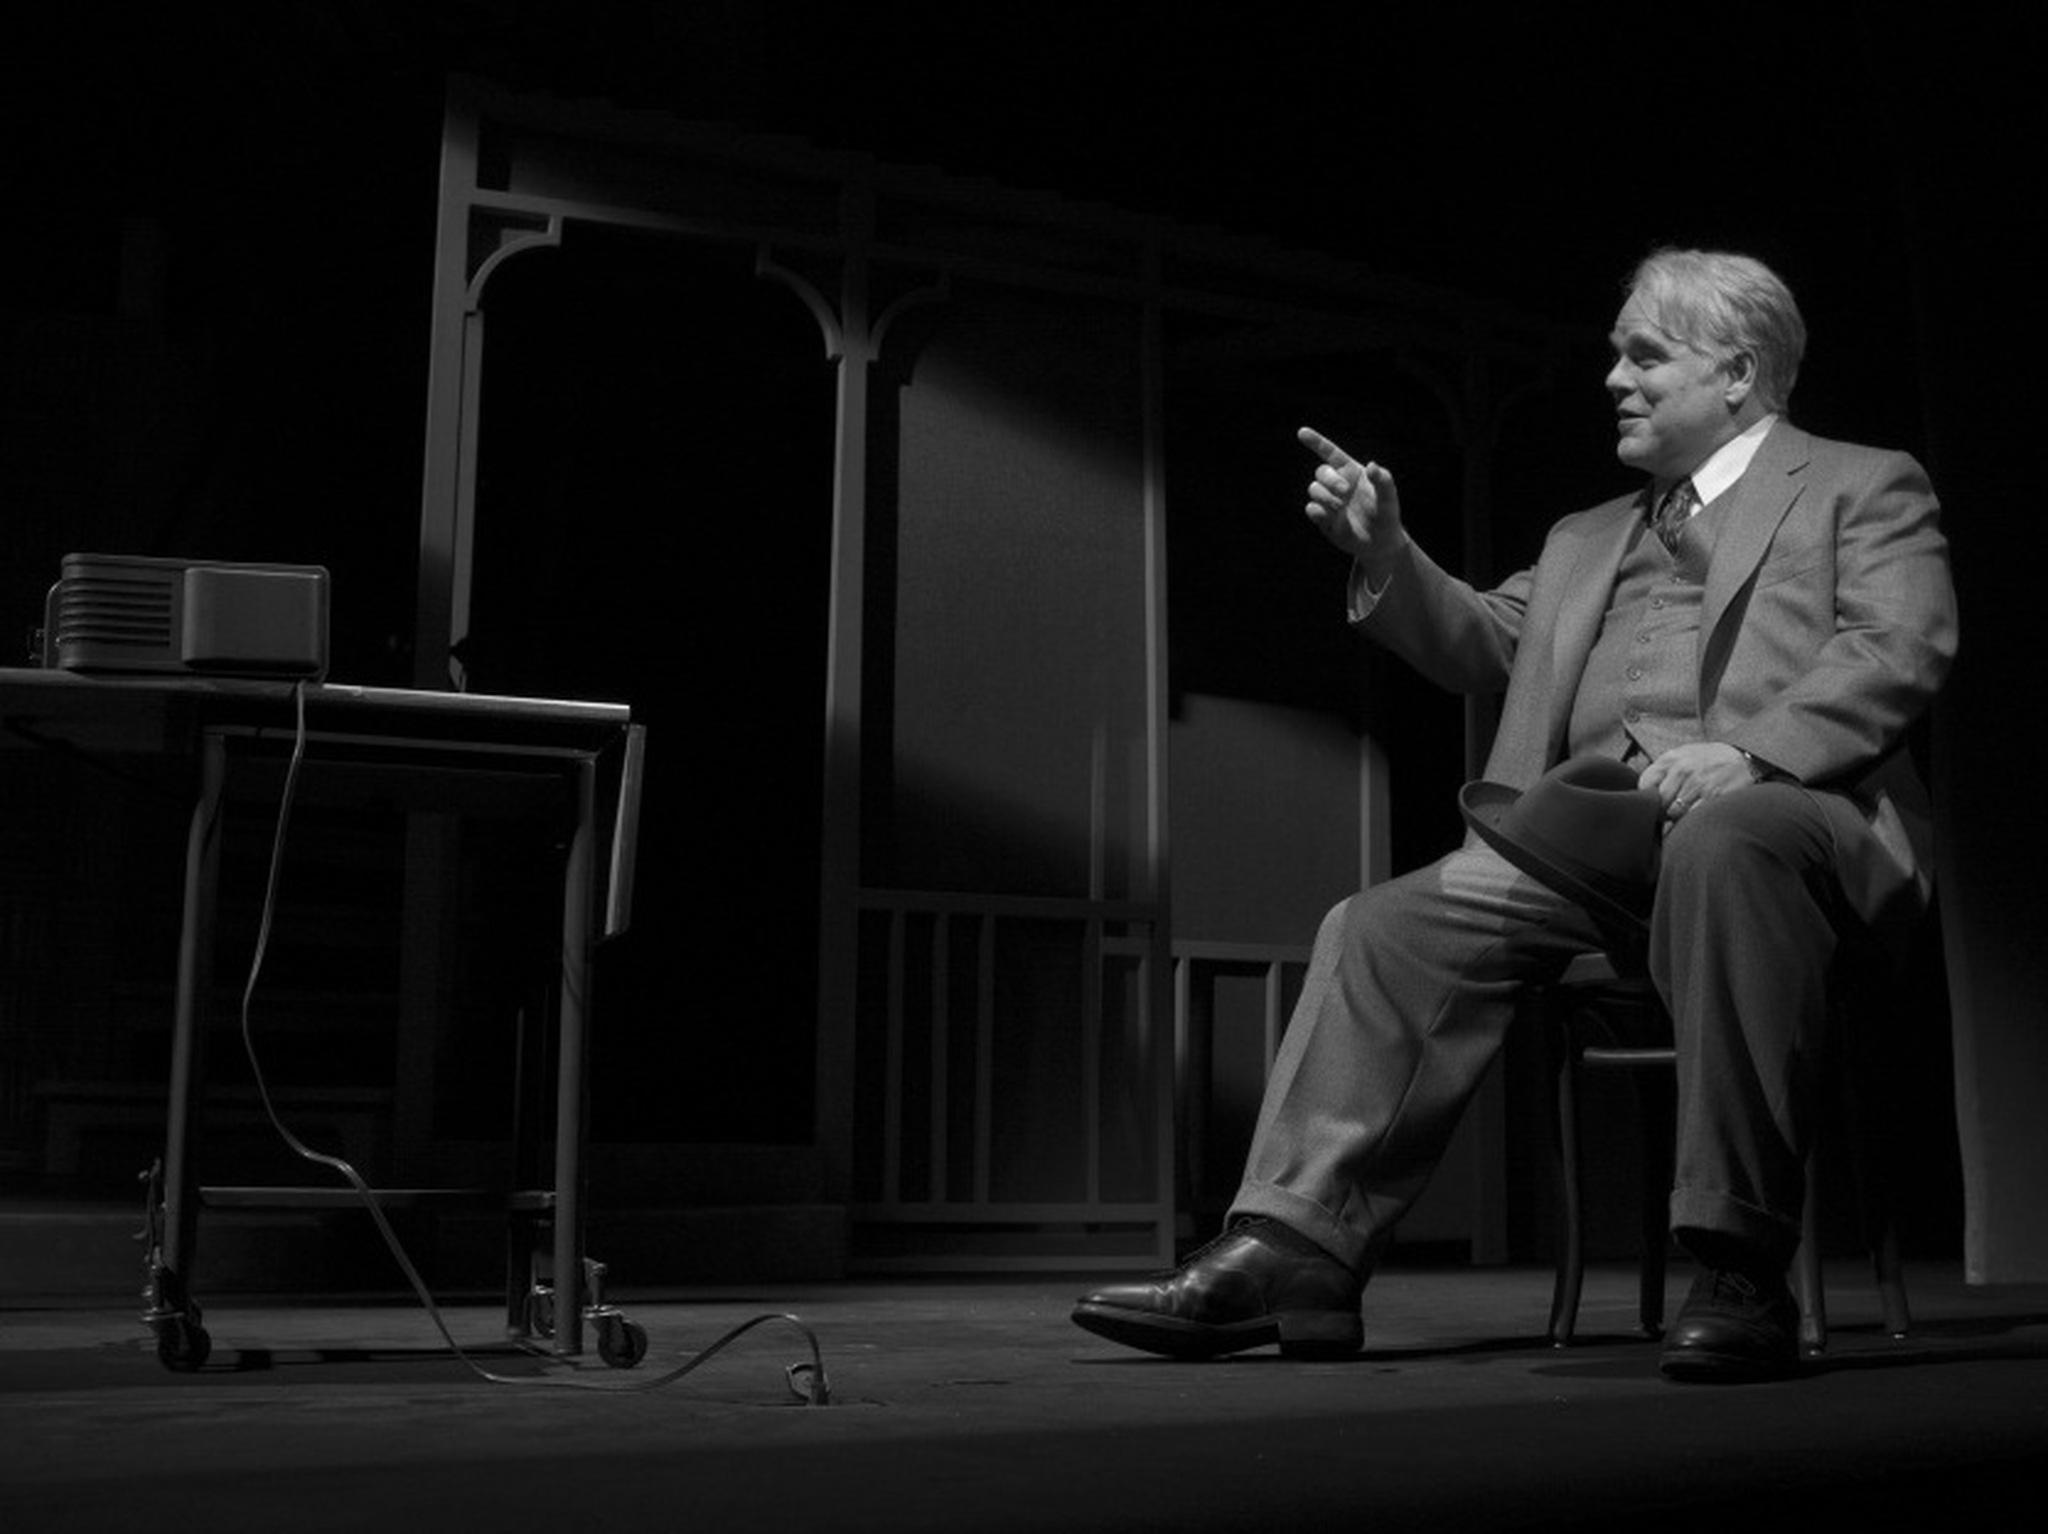 Existential Nihilism and Self-delusion in Arthur Miller's Death of a Salesman